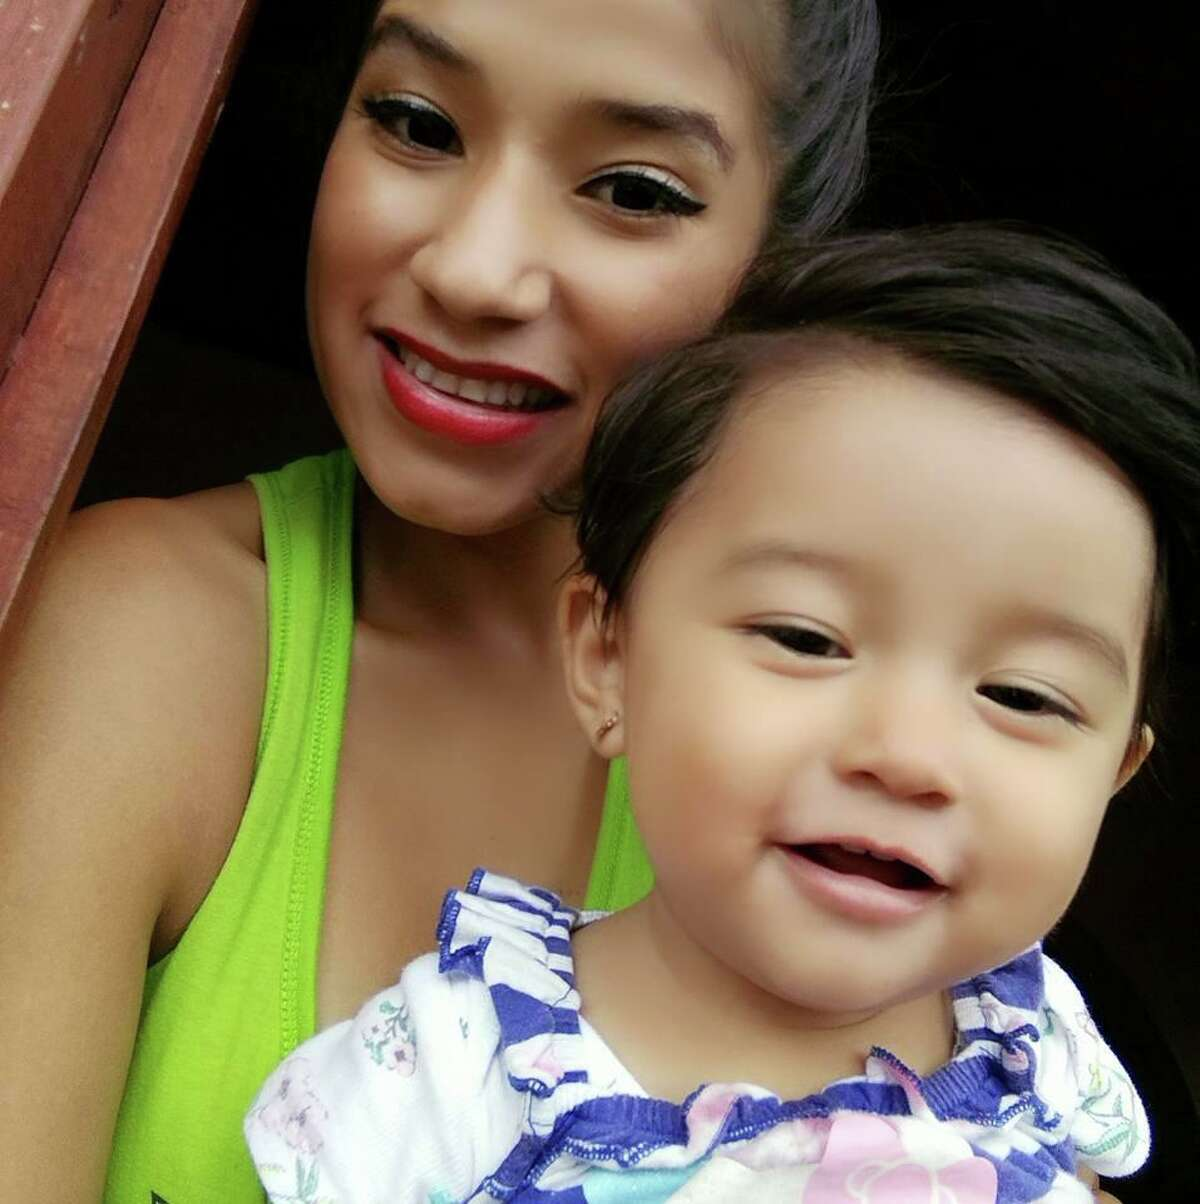 Yazmin Juarez and her daughter Mariee, the toddler who died at a Pennsylvania hospital after staying at an immigrant facility in Dilley. The mother and her daughter fled Guatemala and crossed the U.S border to seek asylum.